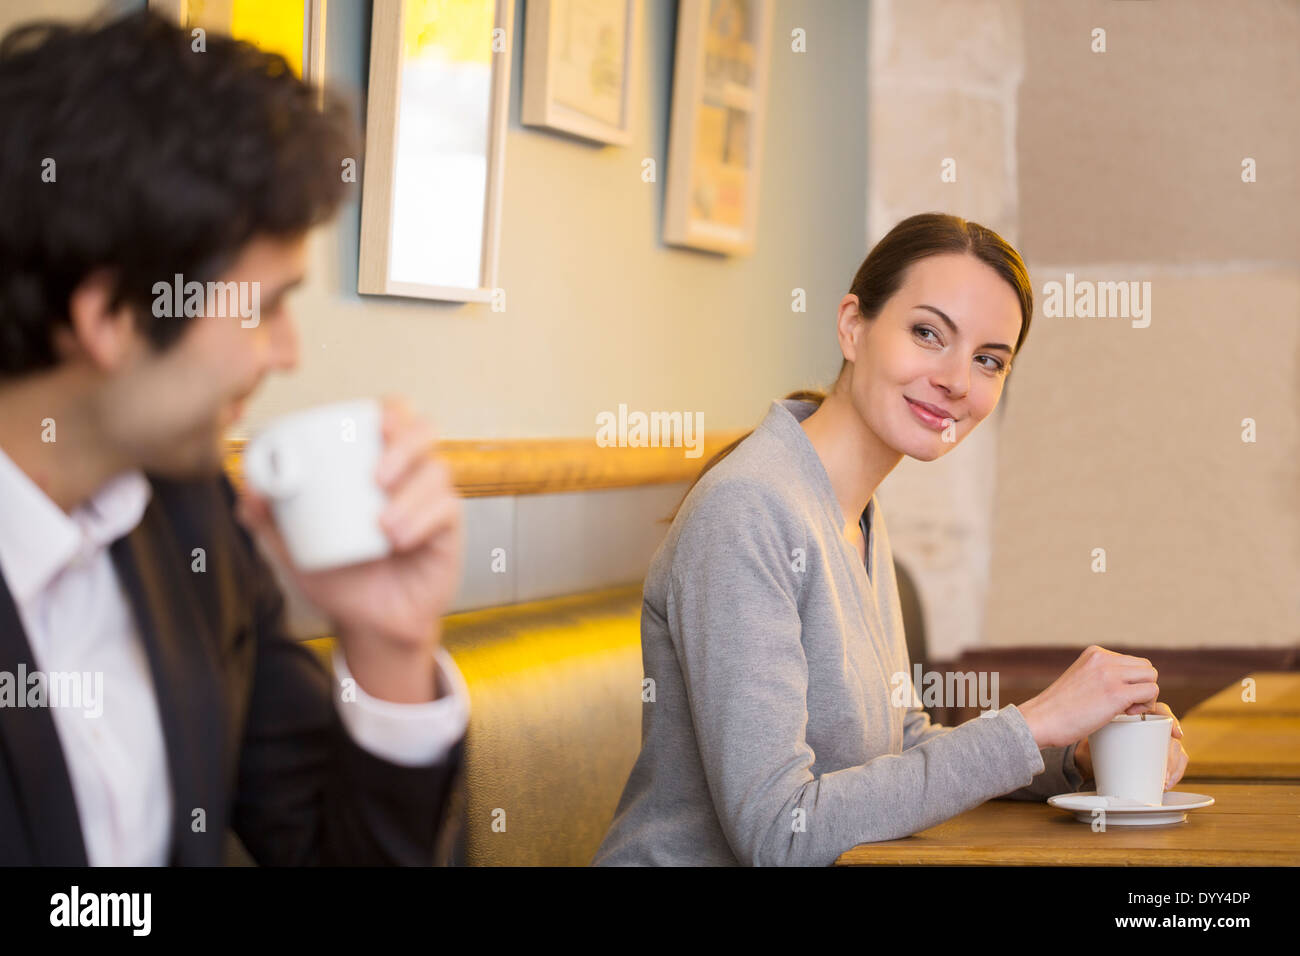 Woman man smiling restaurant date d'amour Photo Stock